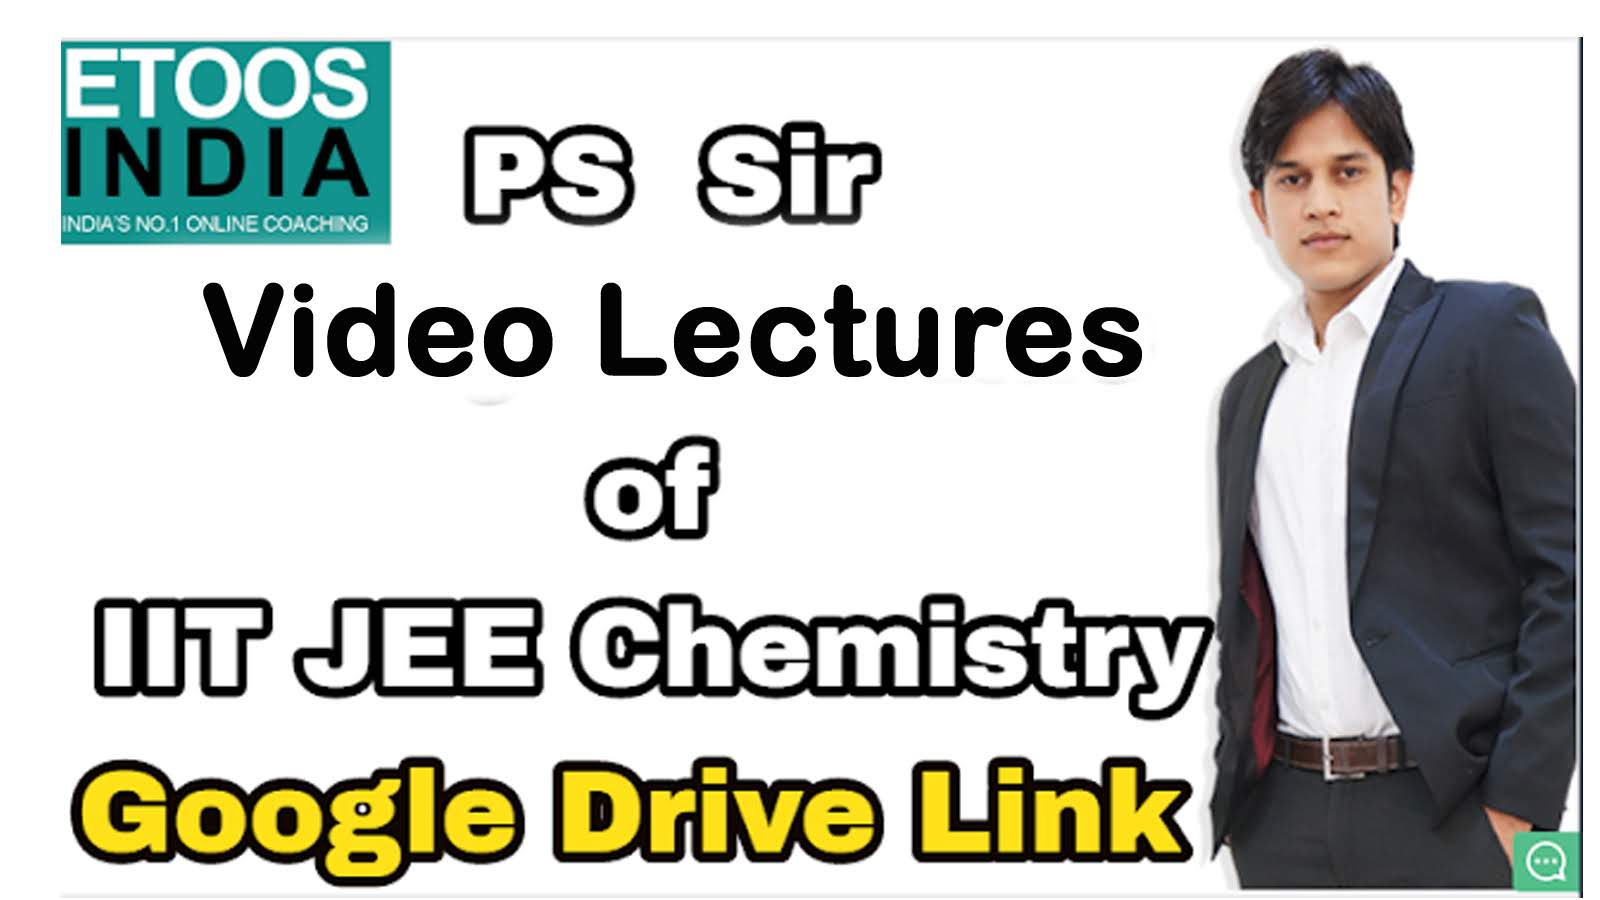 PS SIR Complete Physical and Organic Chemistry for JEE MAIN/ADVANCED